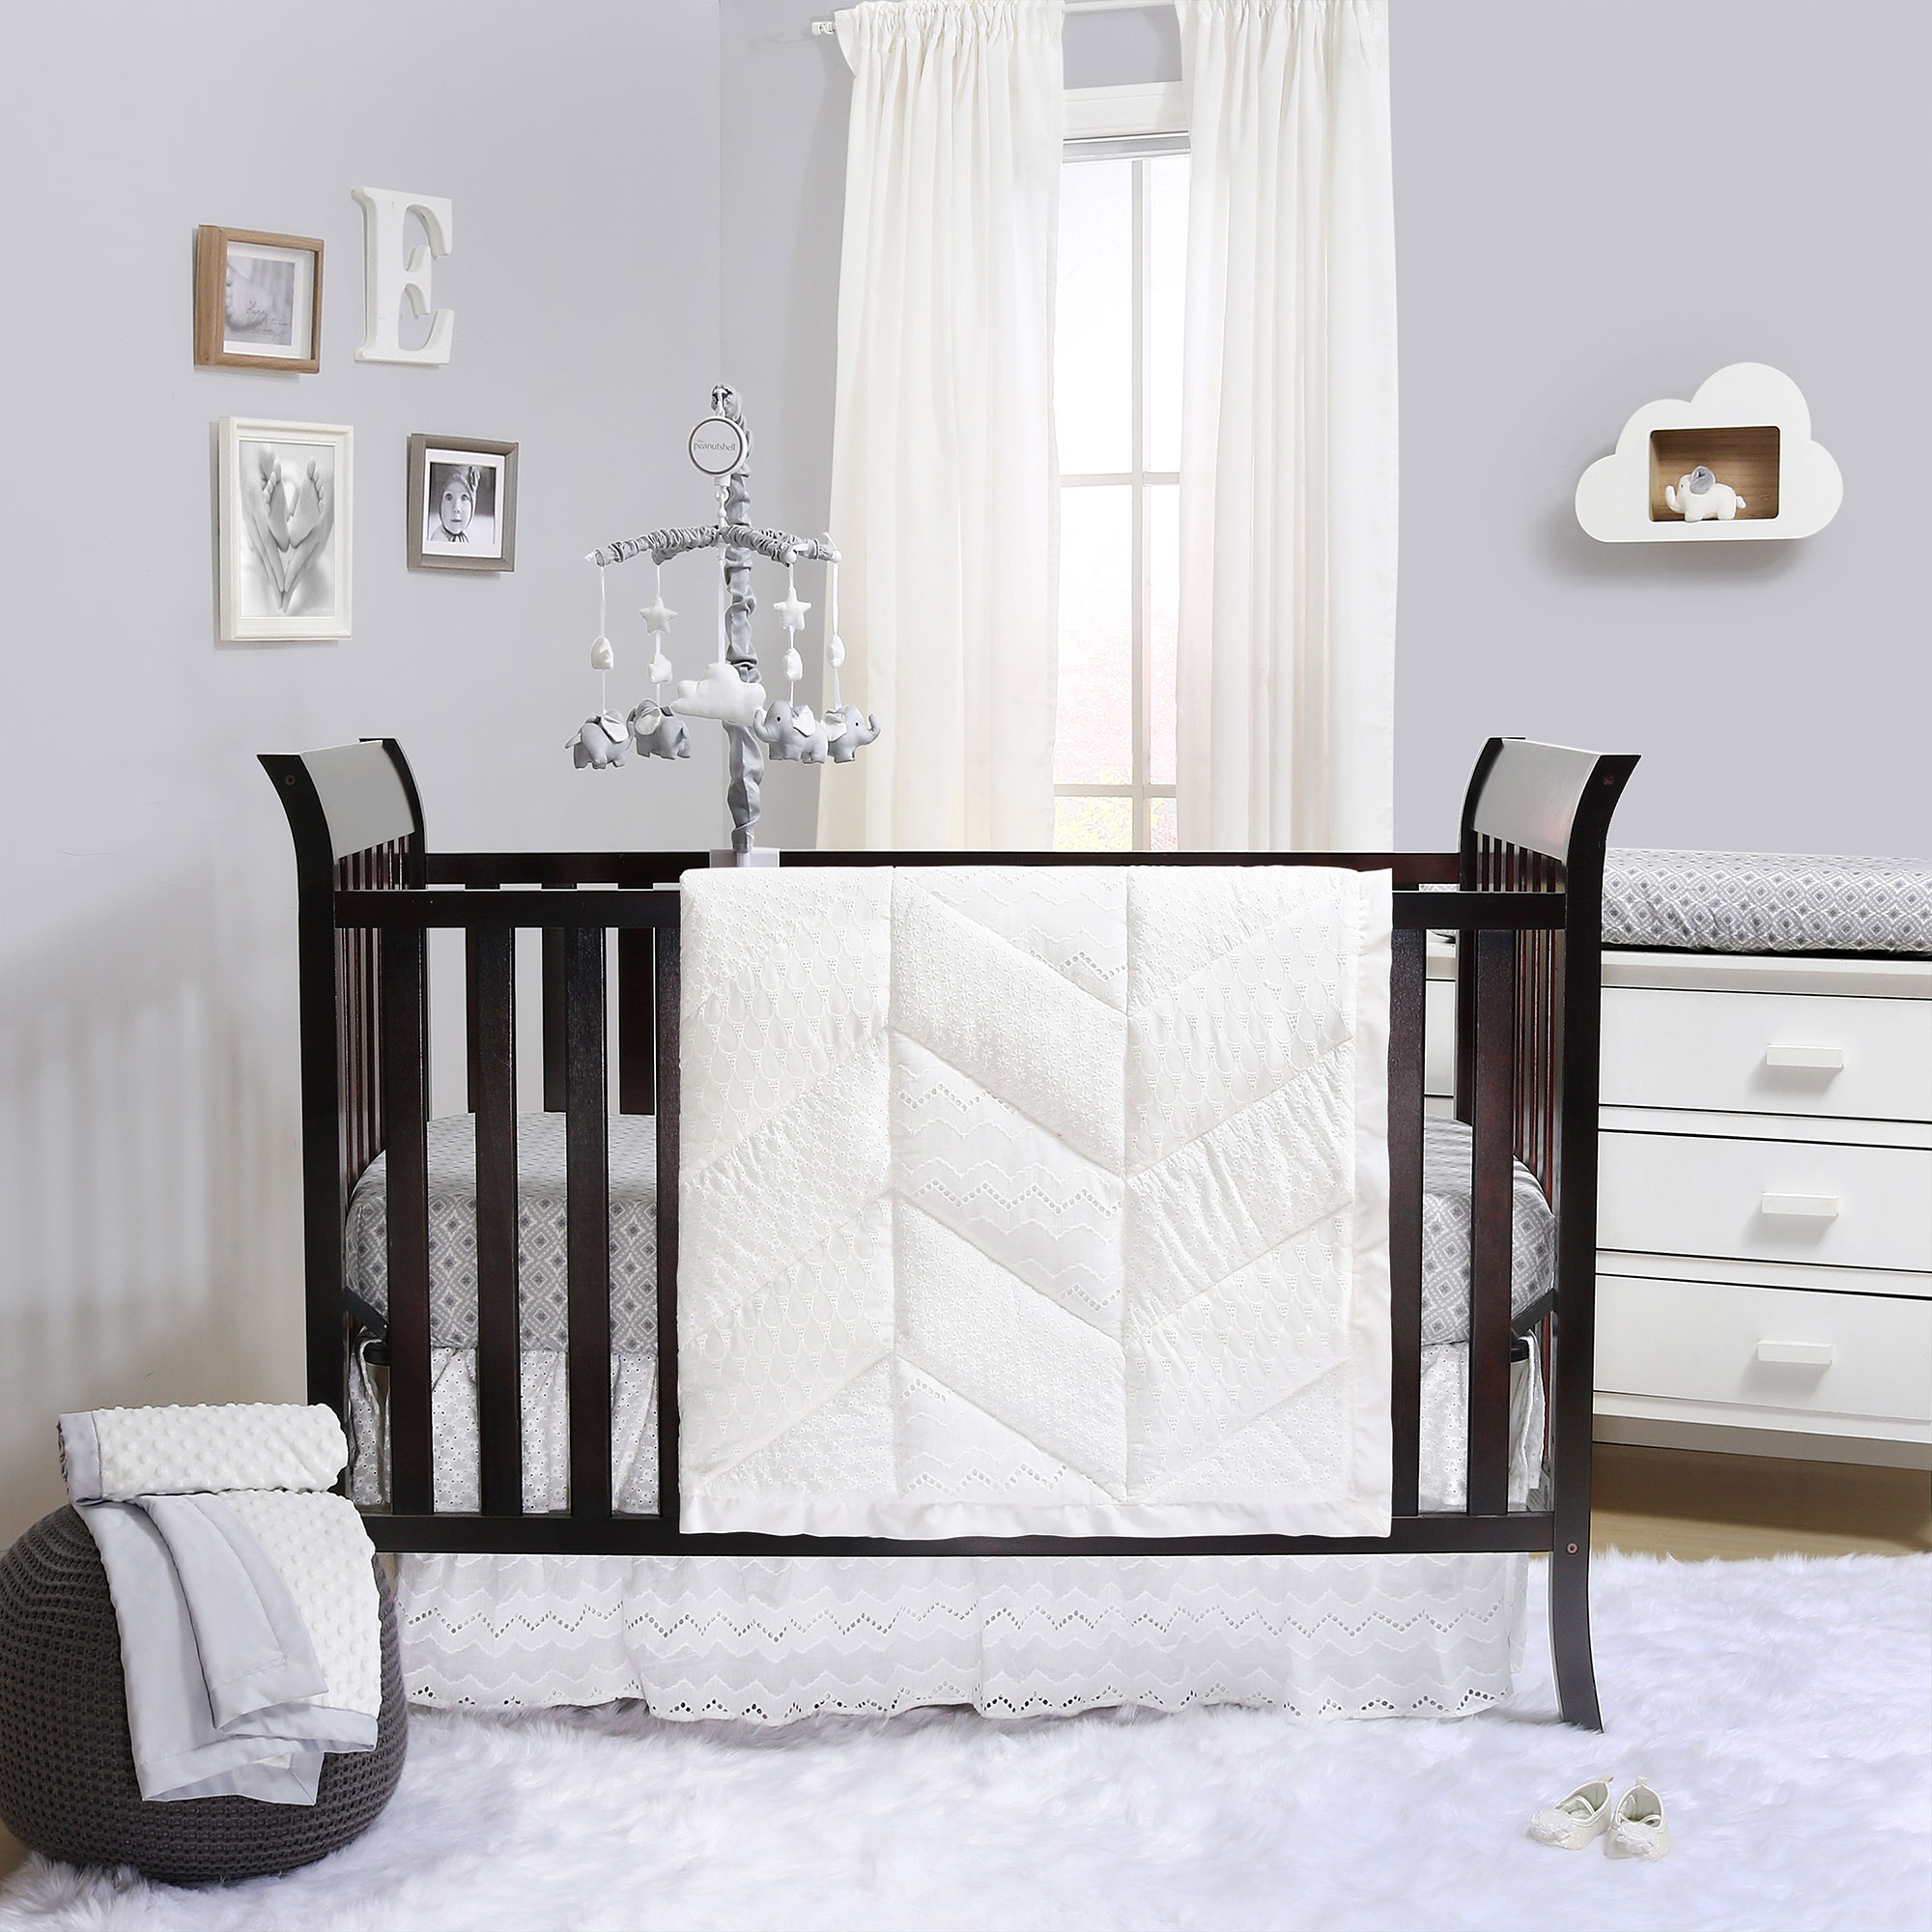 Taylor White Eyelet 5 Piece Baby Crib Bedding Set by The Peanut Shell by The Peanut Shell